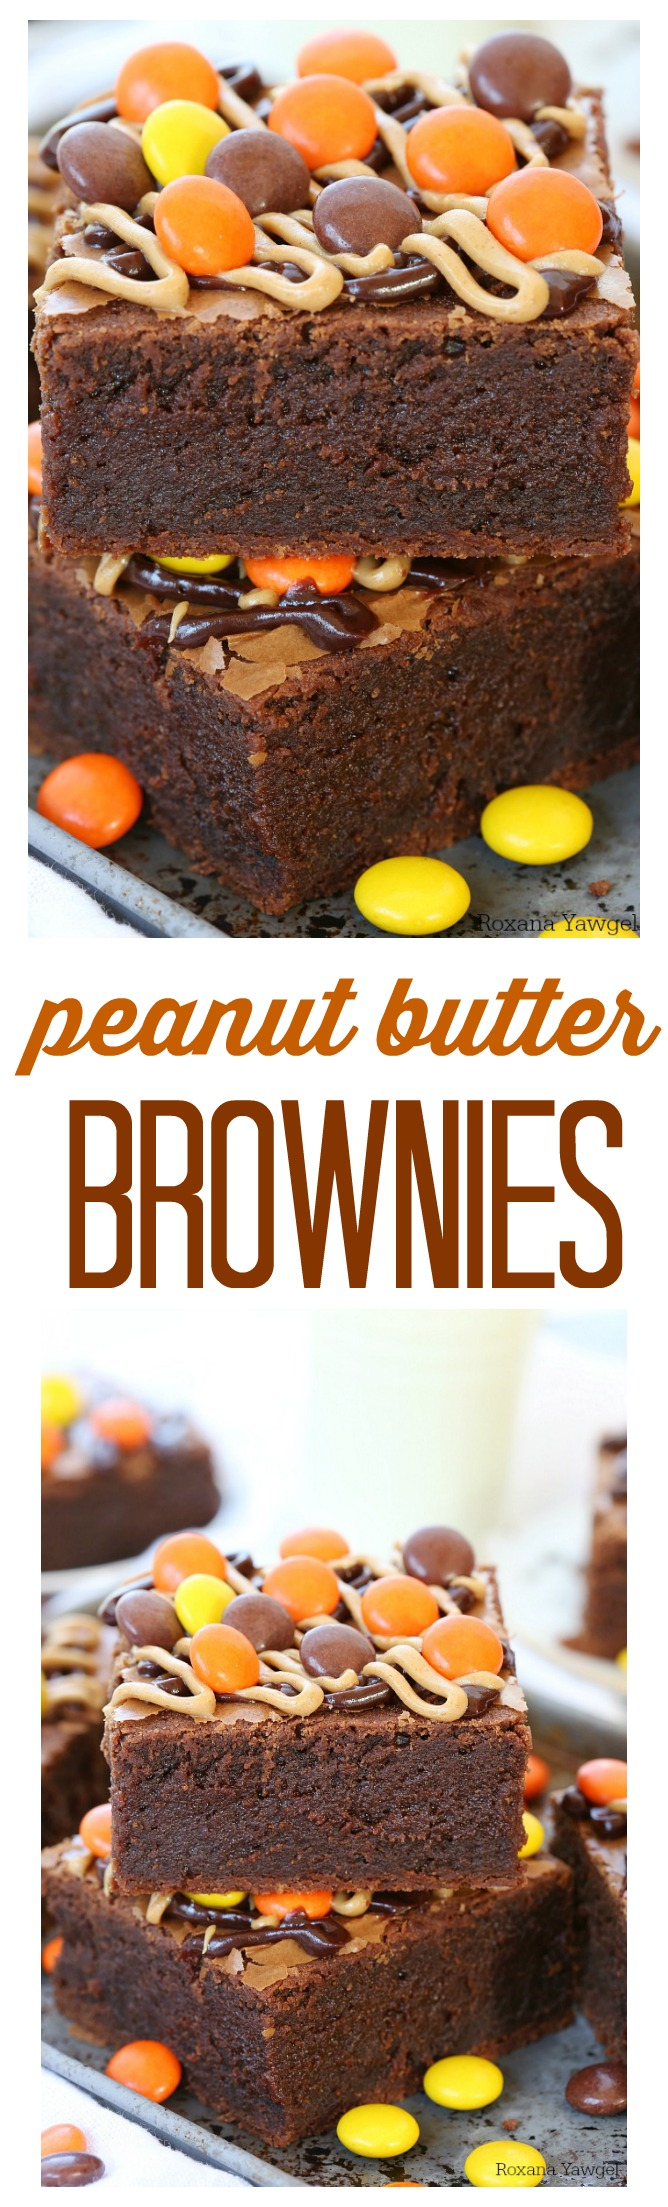 Thick, chewy and fudgy, these over the top delicious peanut butter brownies will be your new favorite treat! Just as easy as a box mix, but so much better.